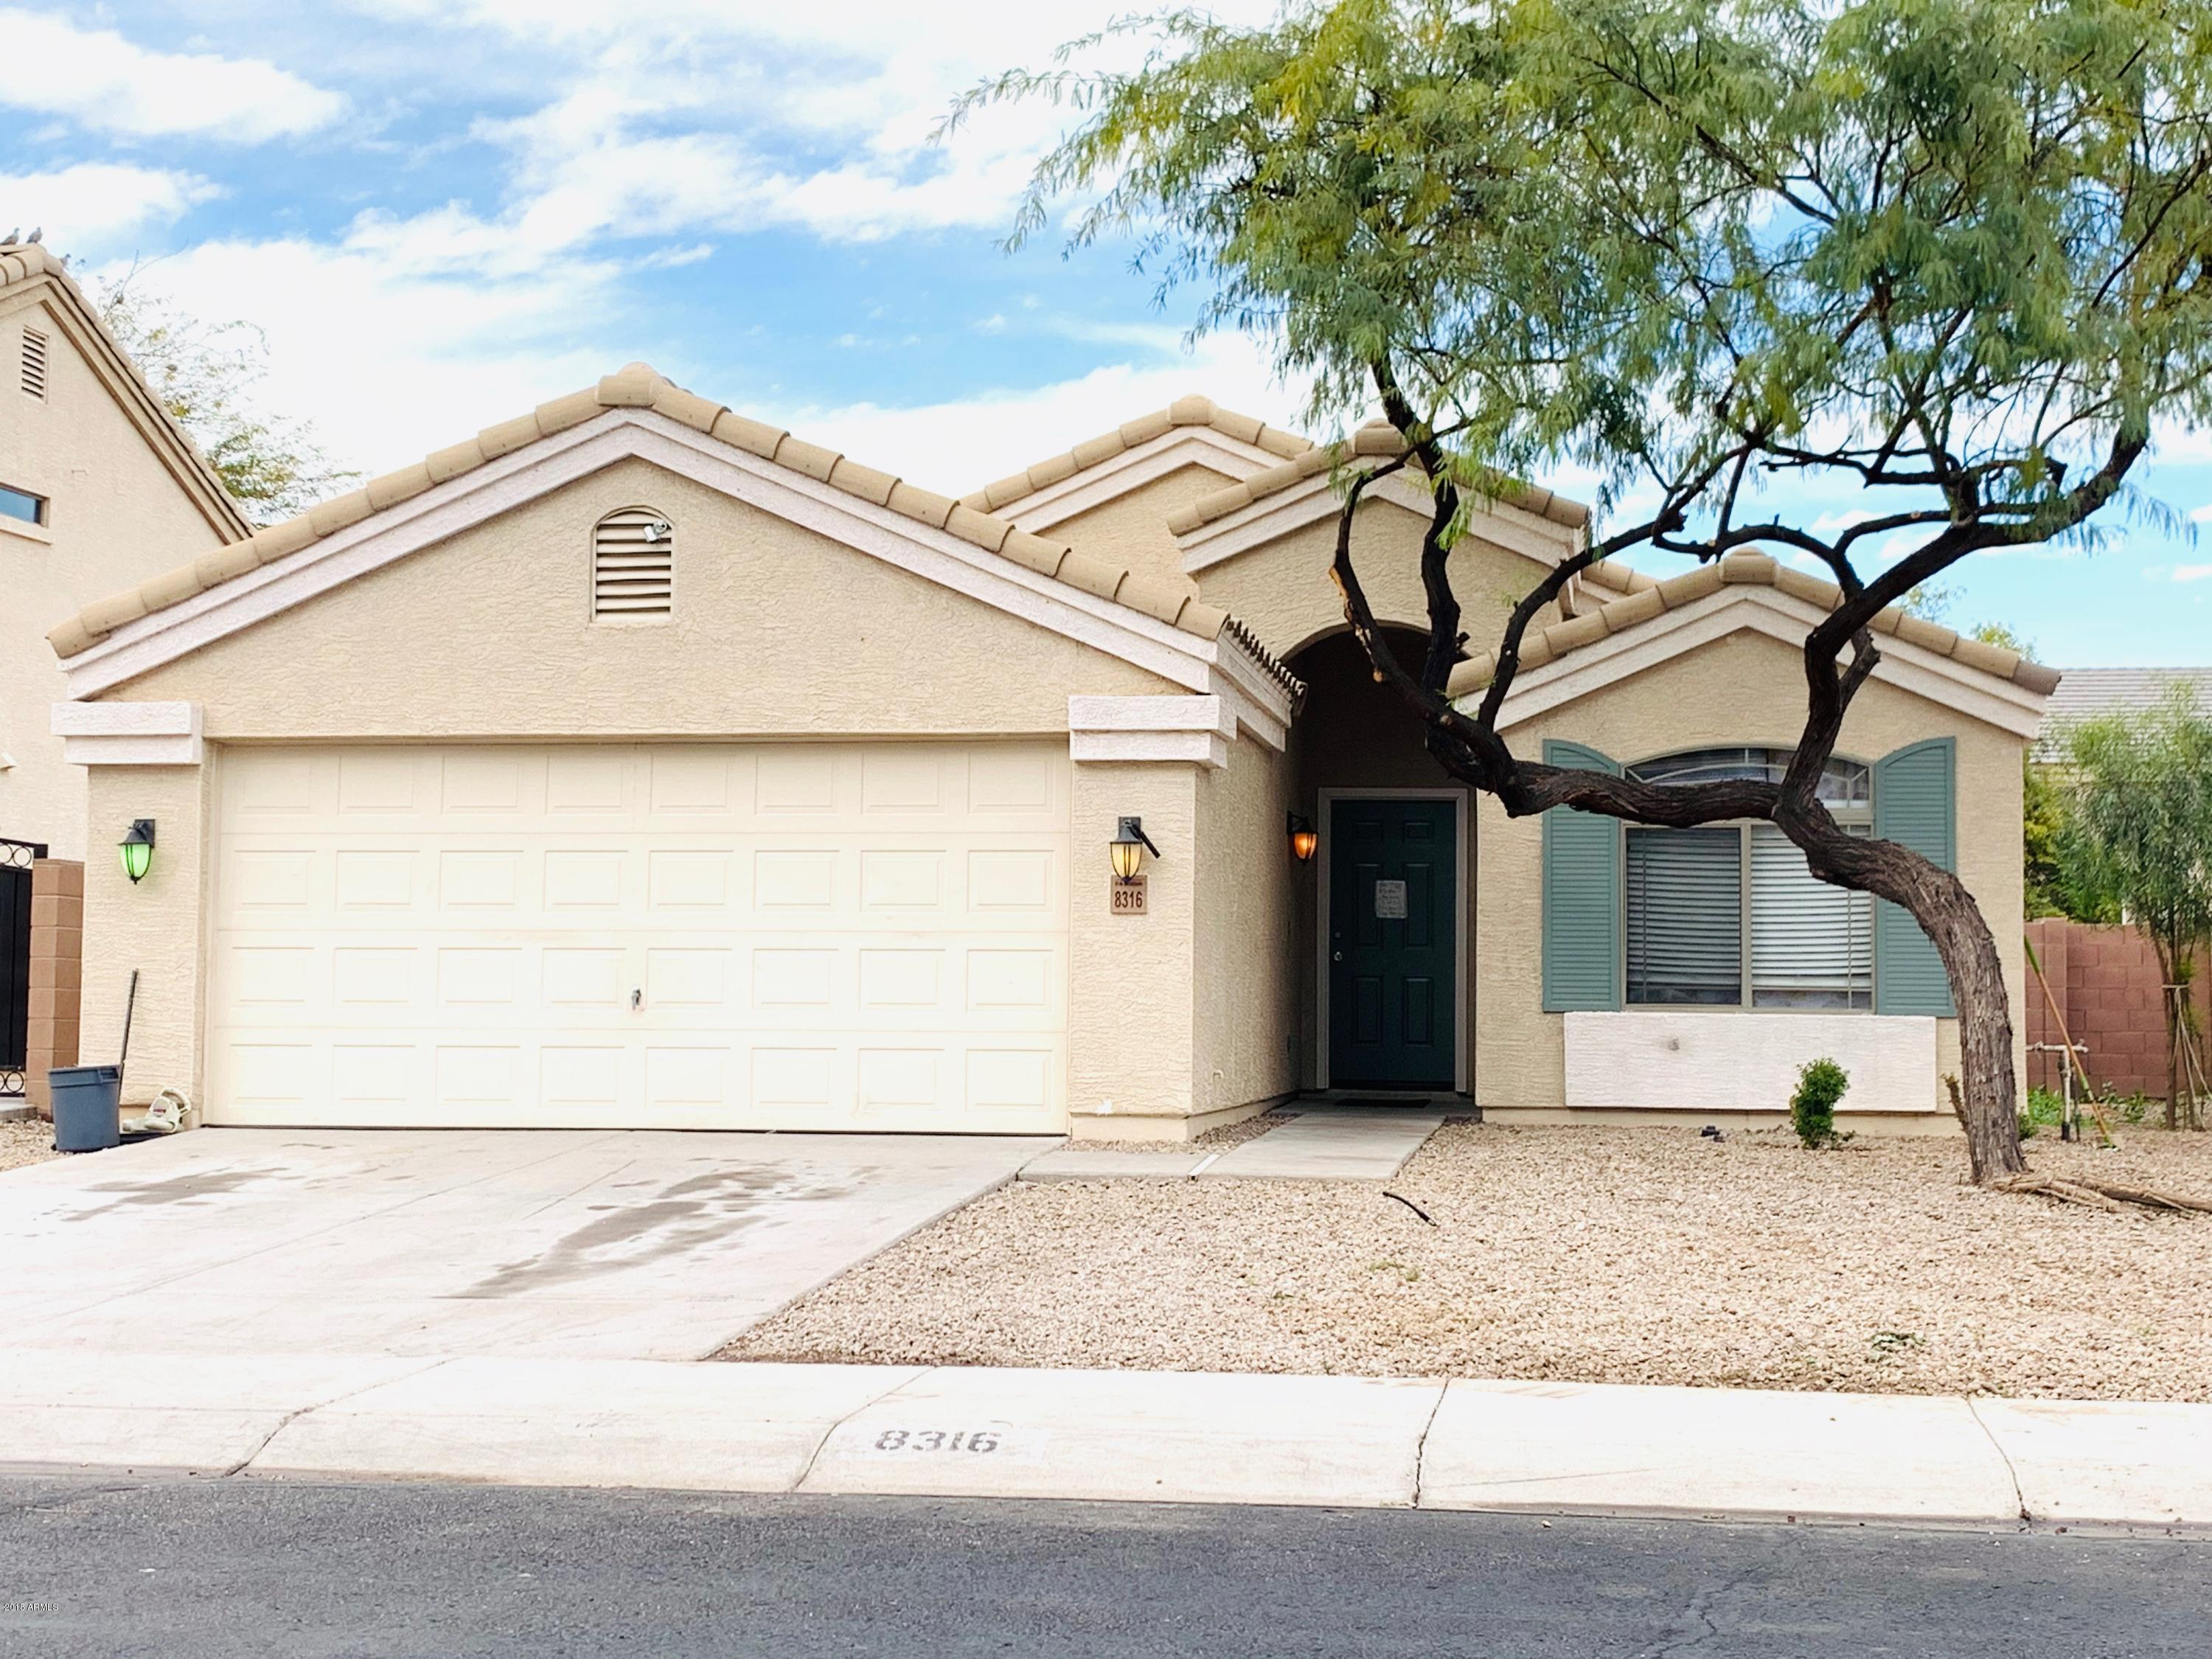 Photo of 8316 W CROWN KING Road, Tolleson, AZ 85353